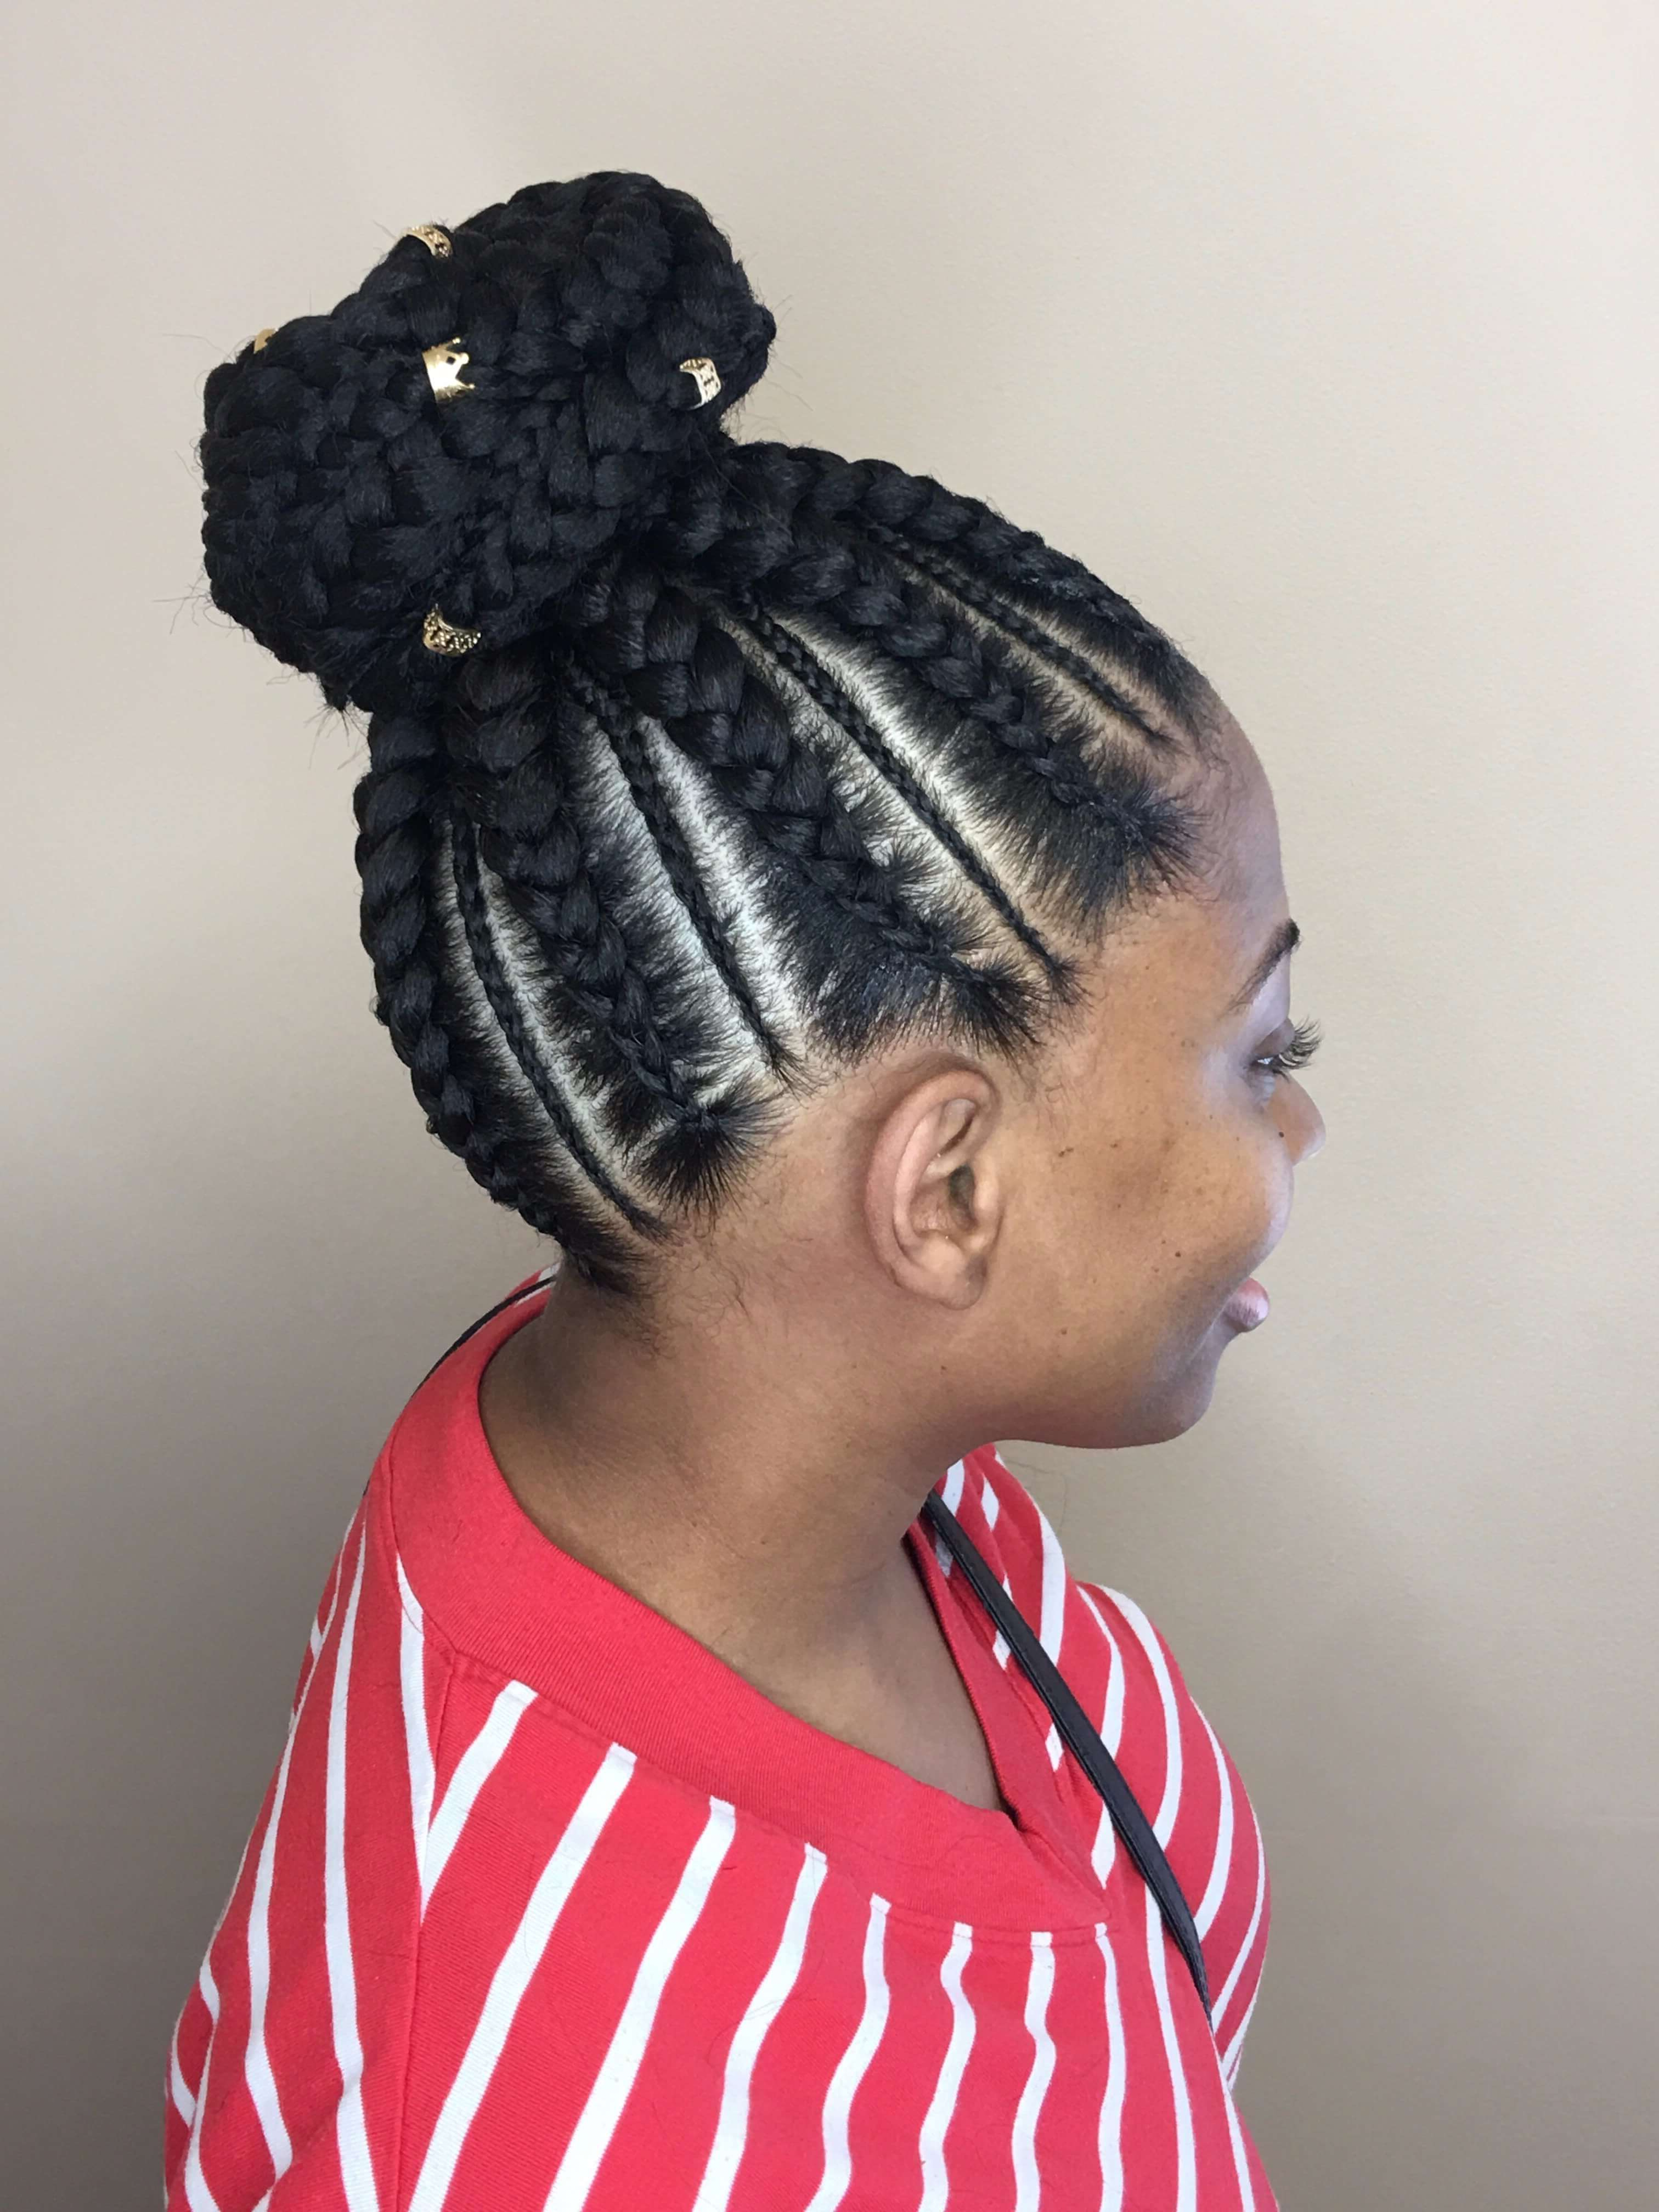 2019 Full Scalp Patterned Side Braided Hairstyles With 50 Natural Goddess Braids To Bless Ethnic Hair In  (View 1 of 20)